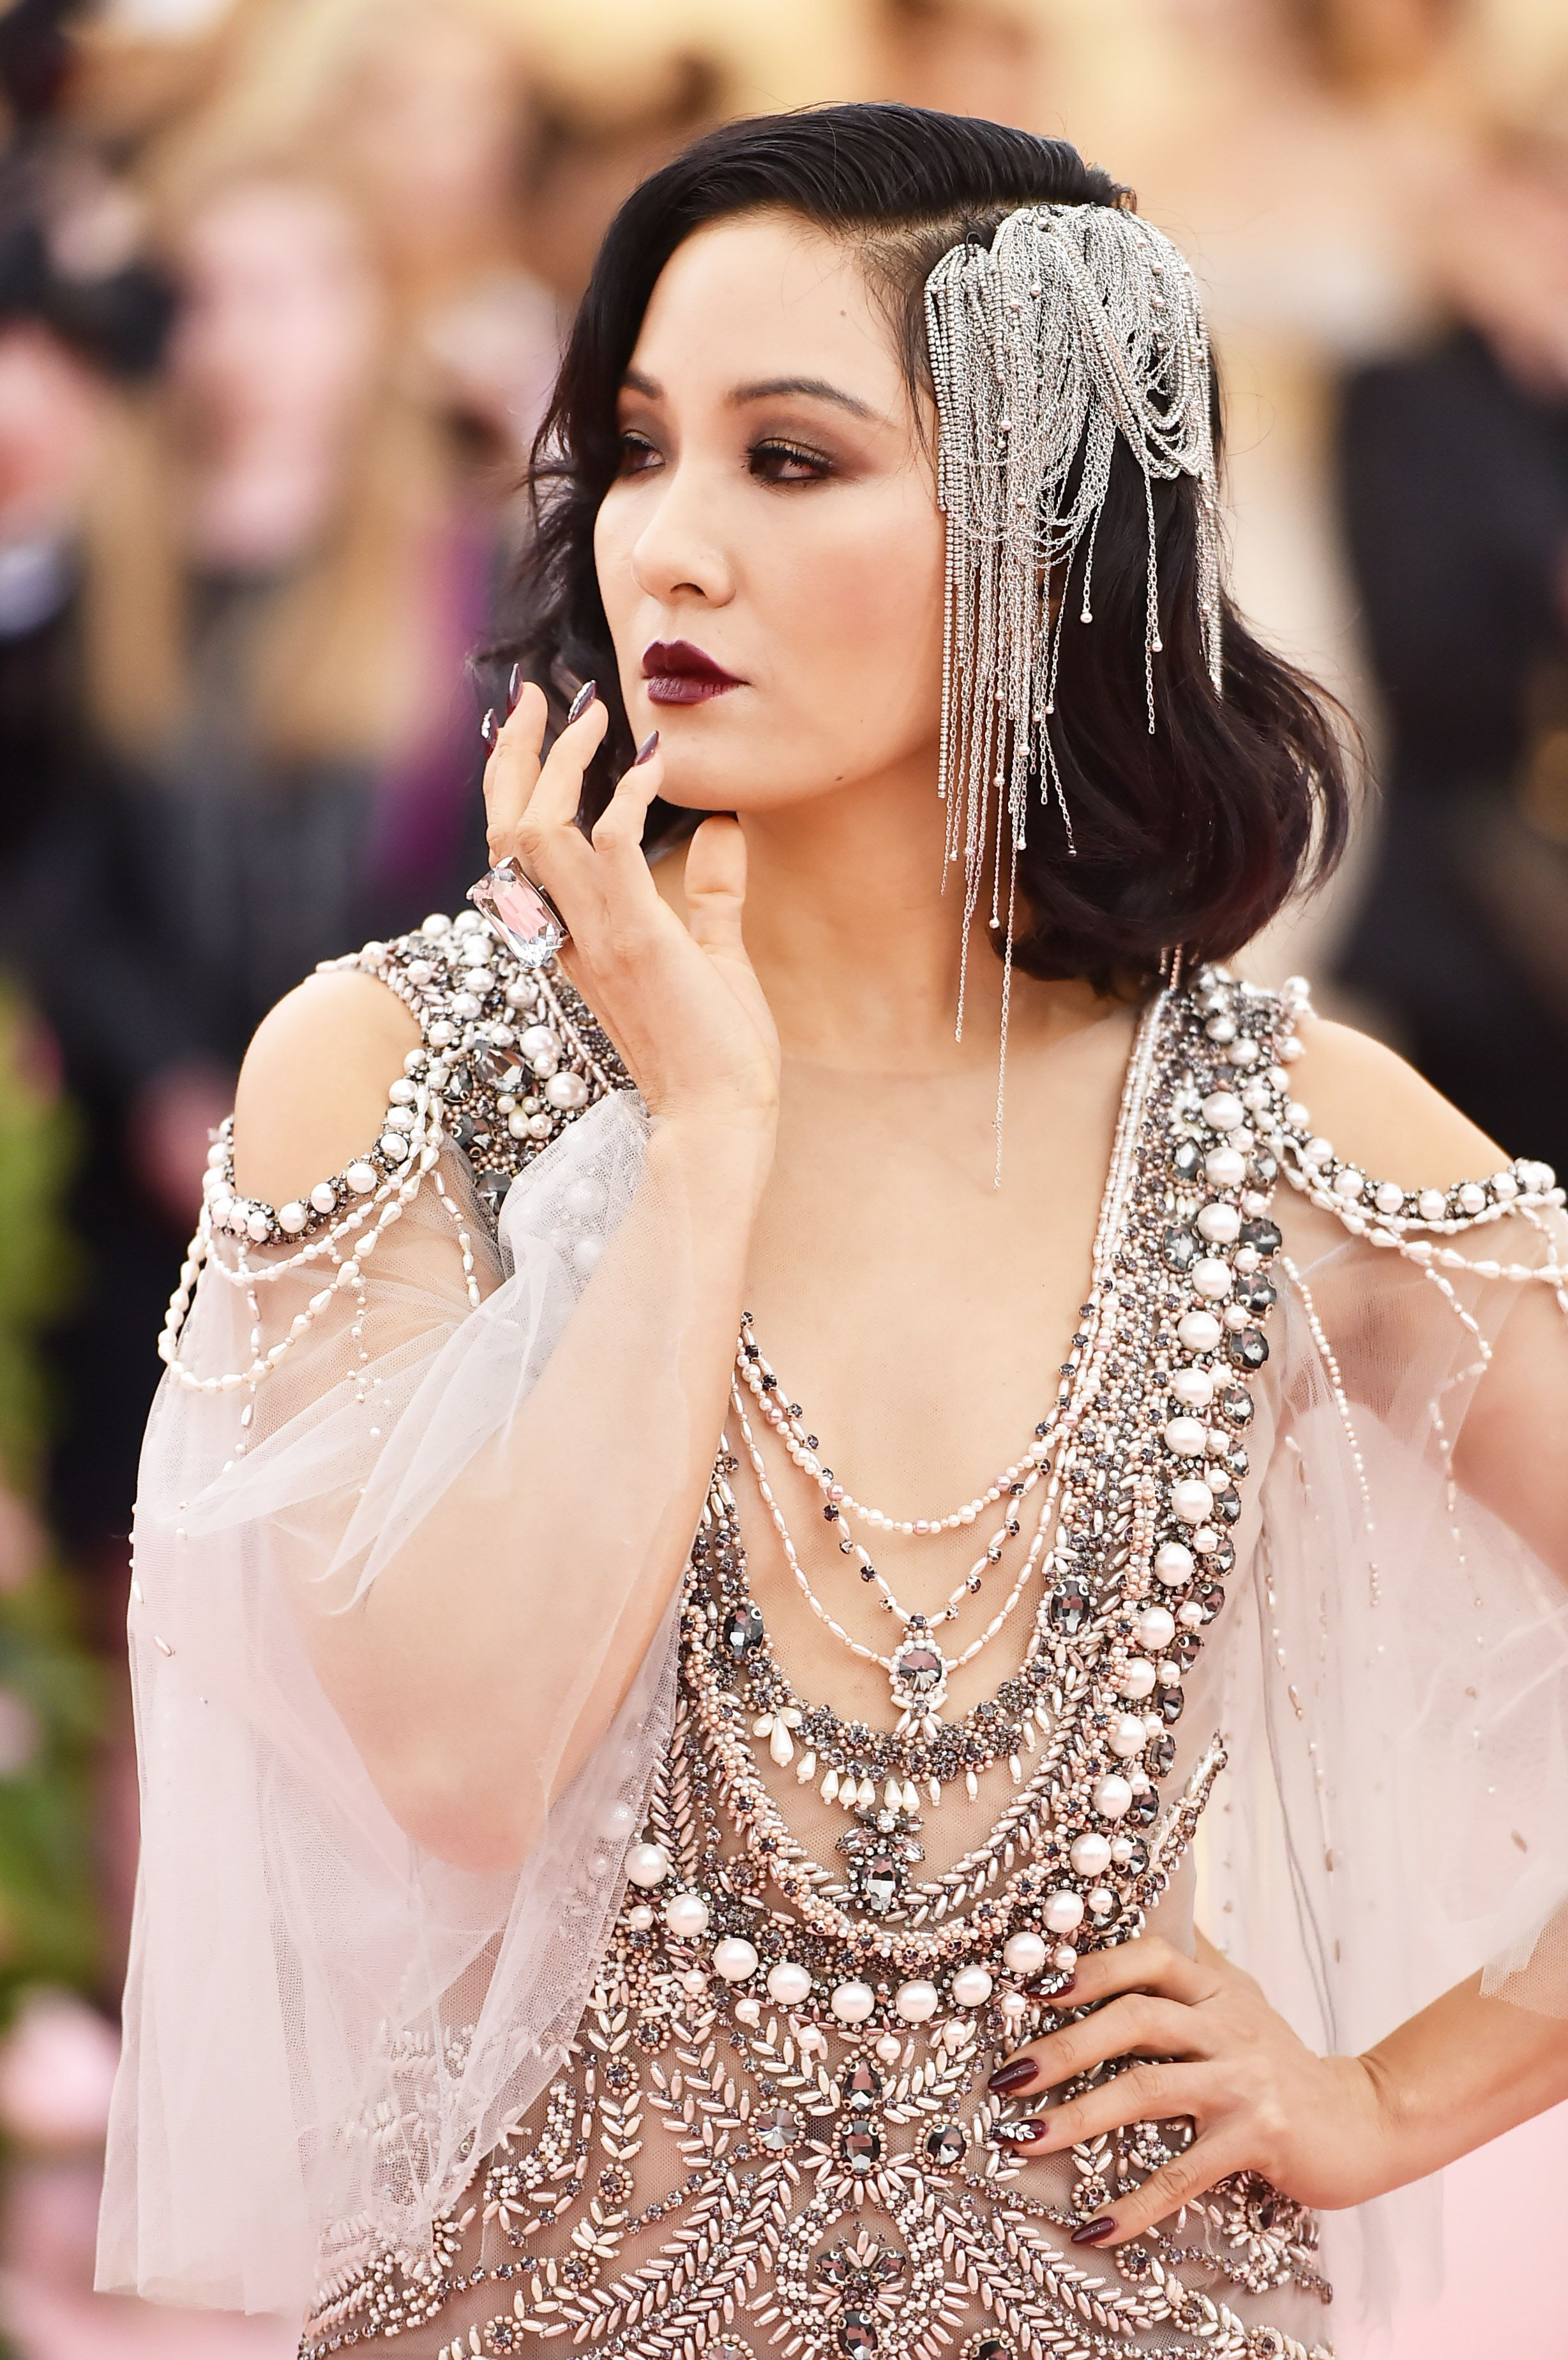 """Constance Wu Constance Wu is dripping in decadence. Yes, you absolutely can couple a deep smokey eye with an even moodier lip for a killer """"thief in the knight"""" vibe."""